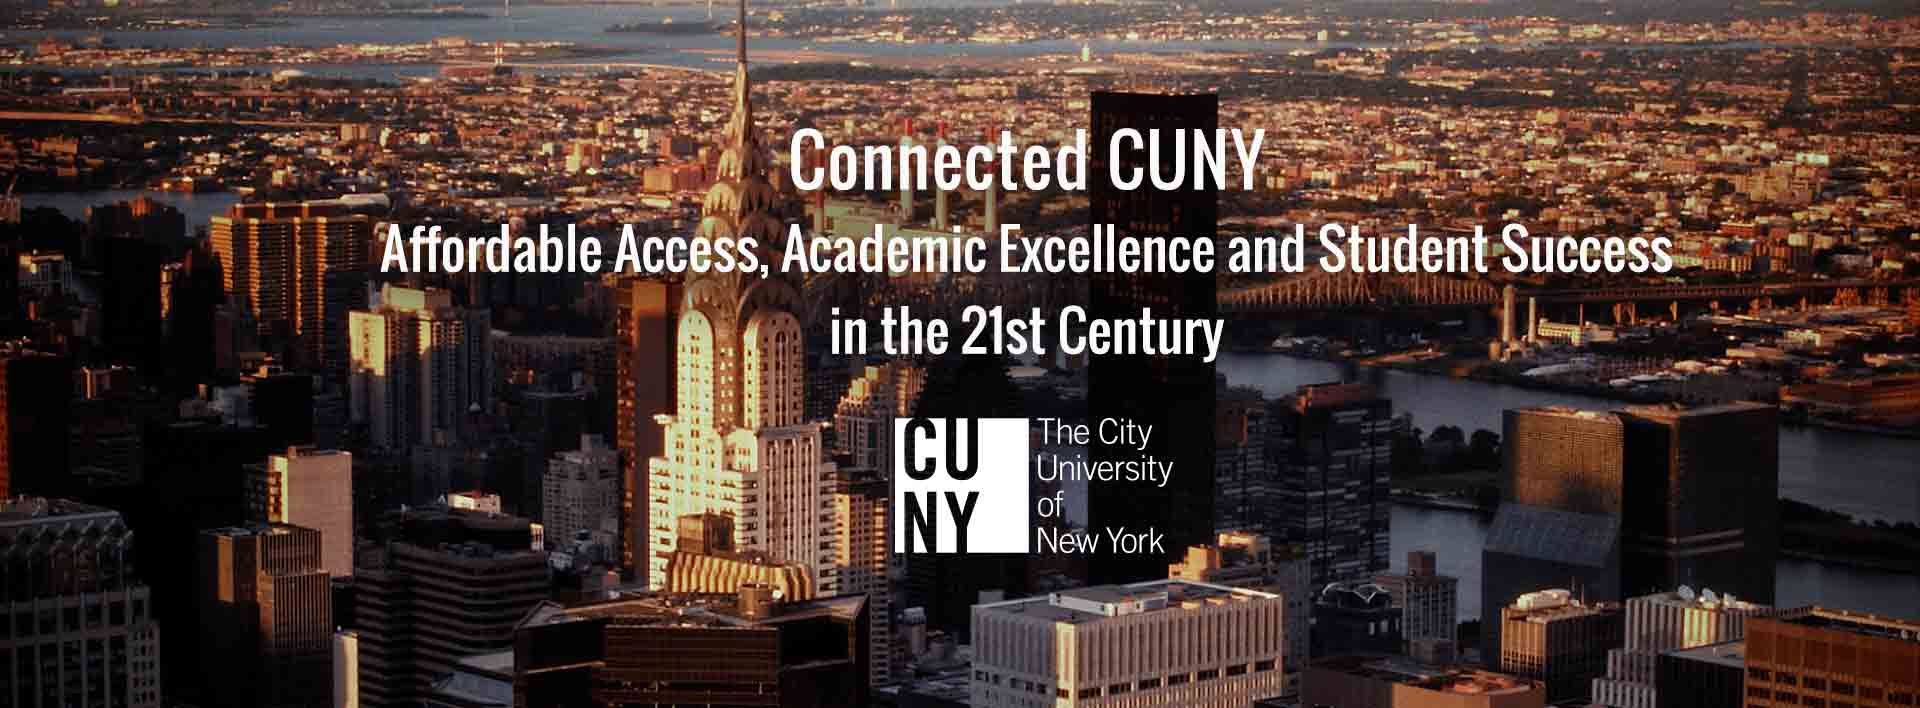 Connected CUNY